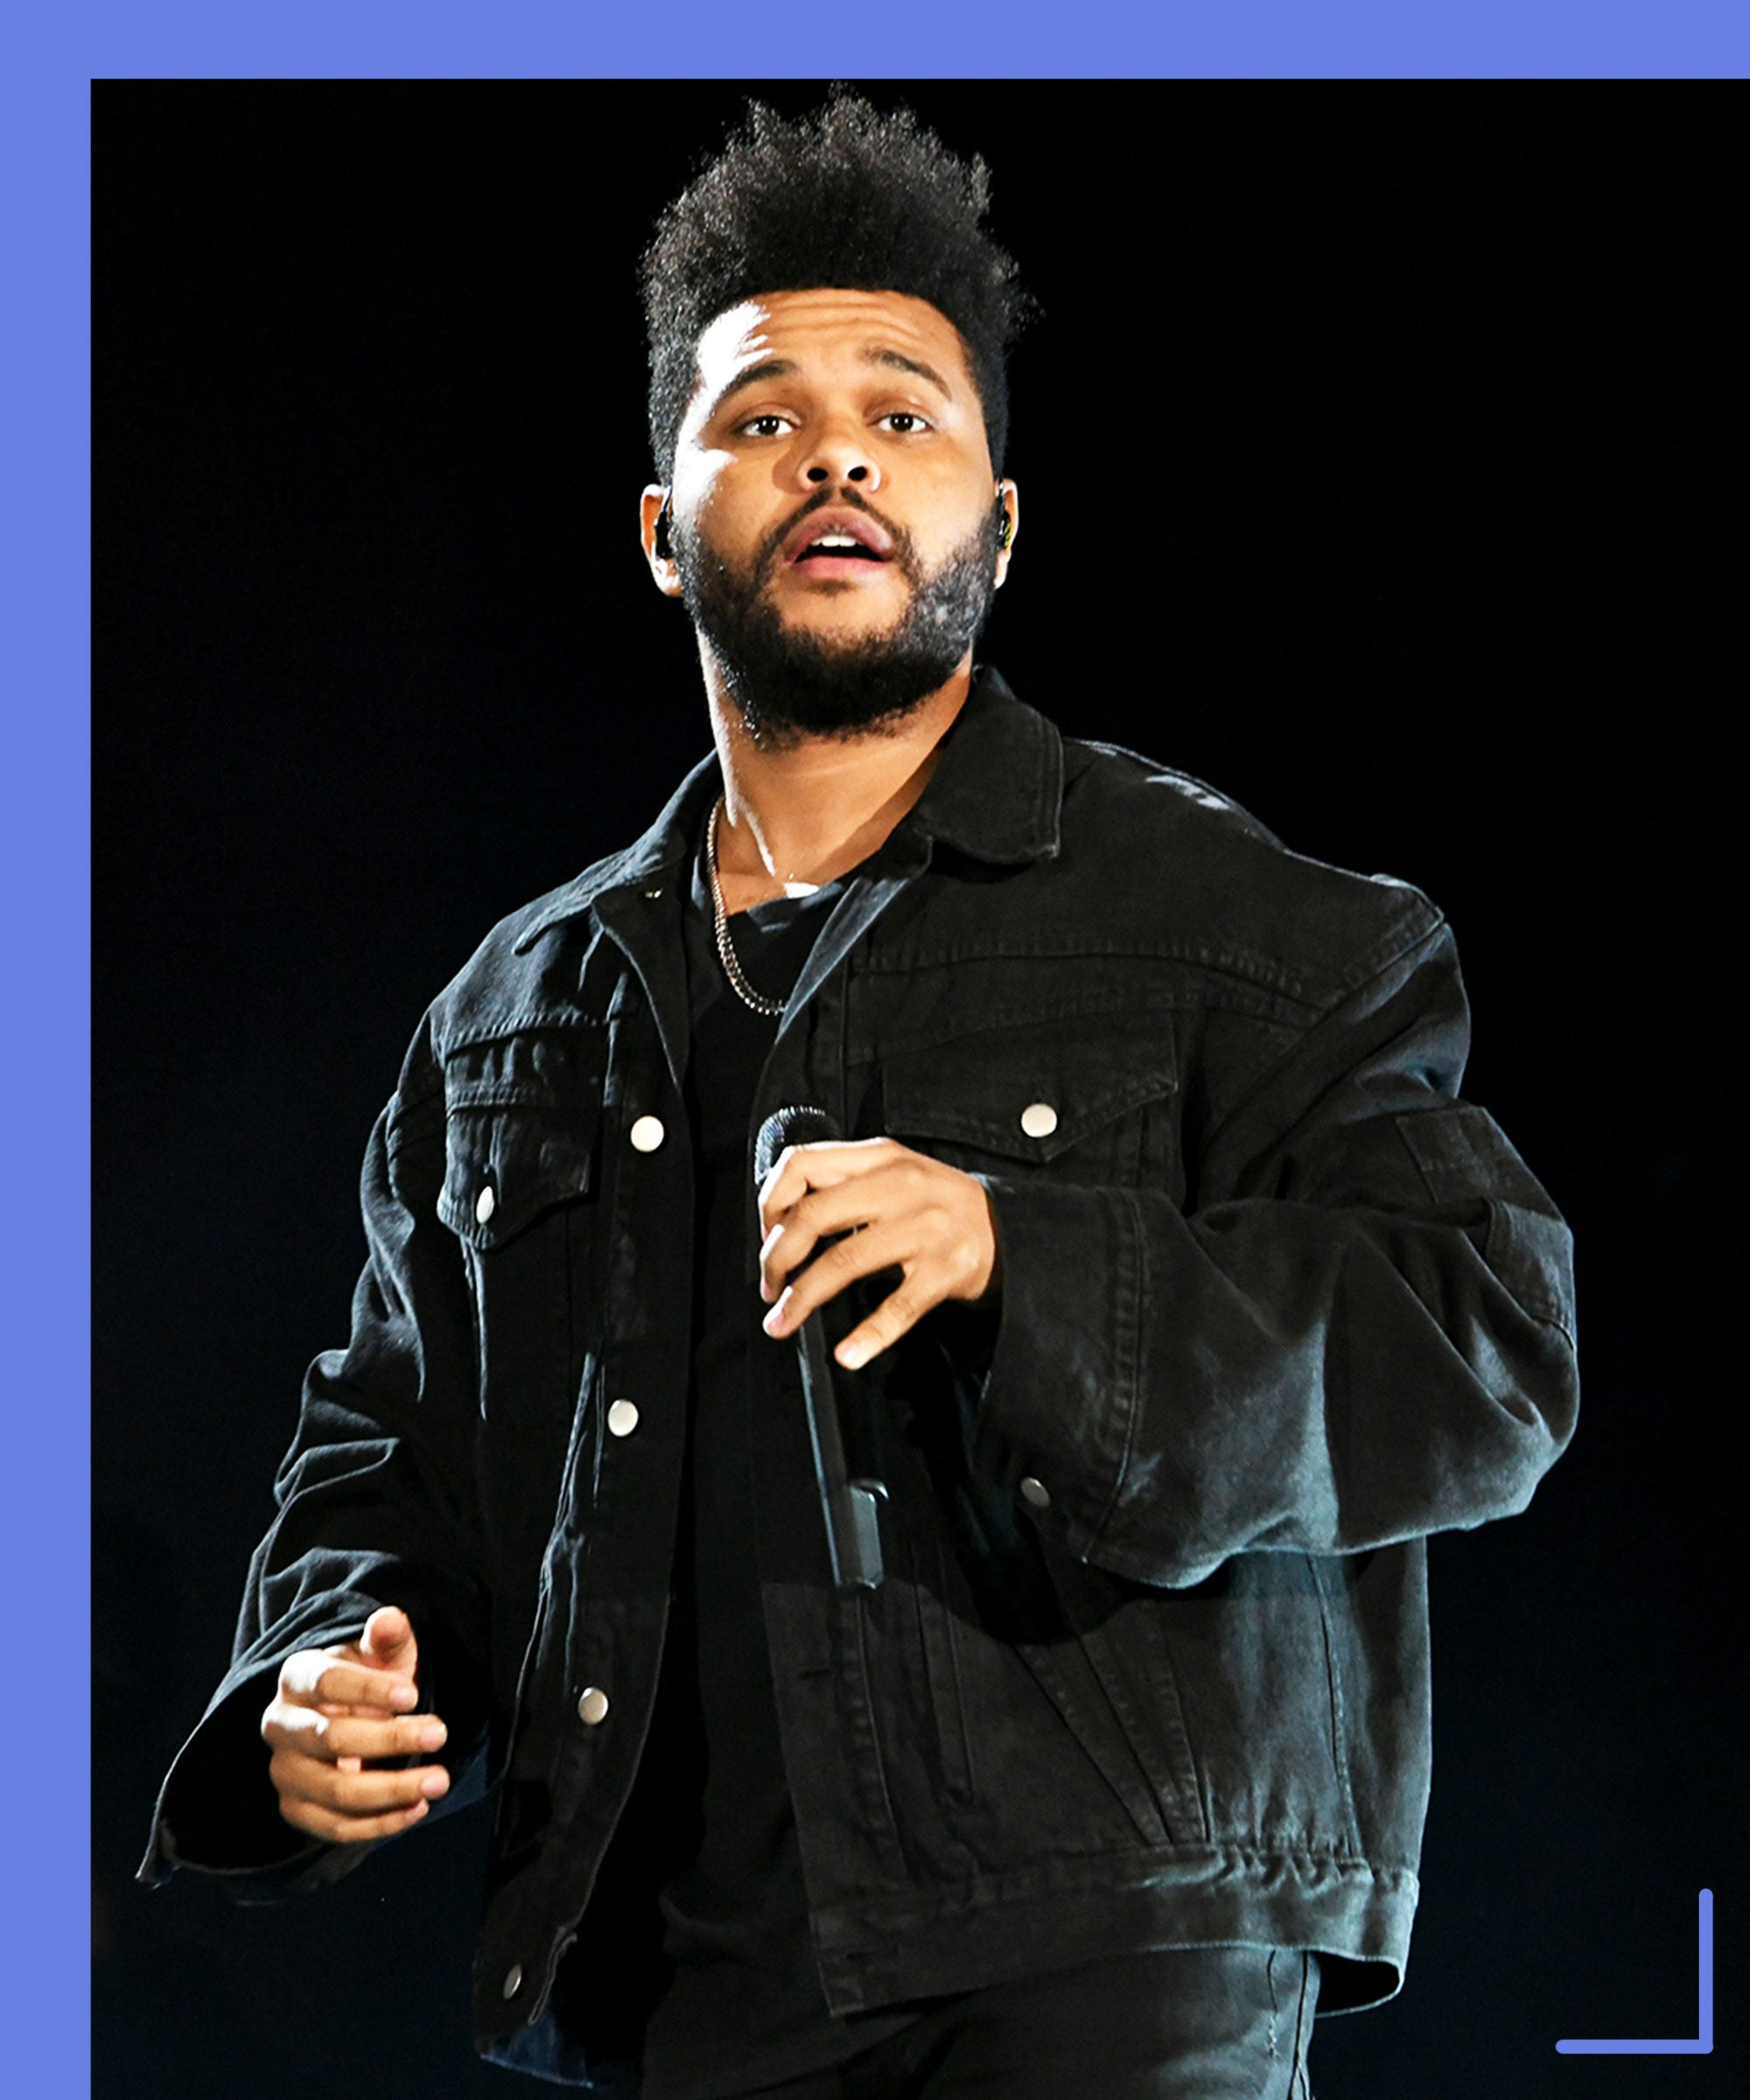 The Weeknd's New Look Will Make You Do A Double Take